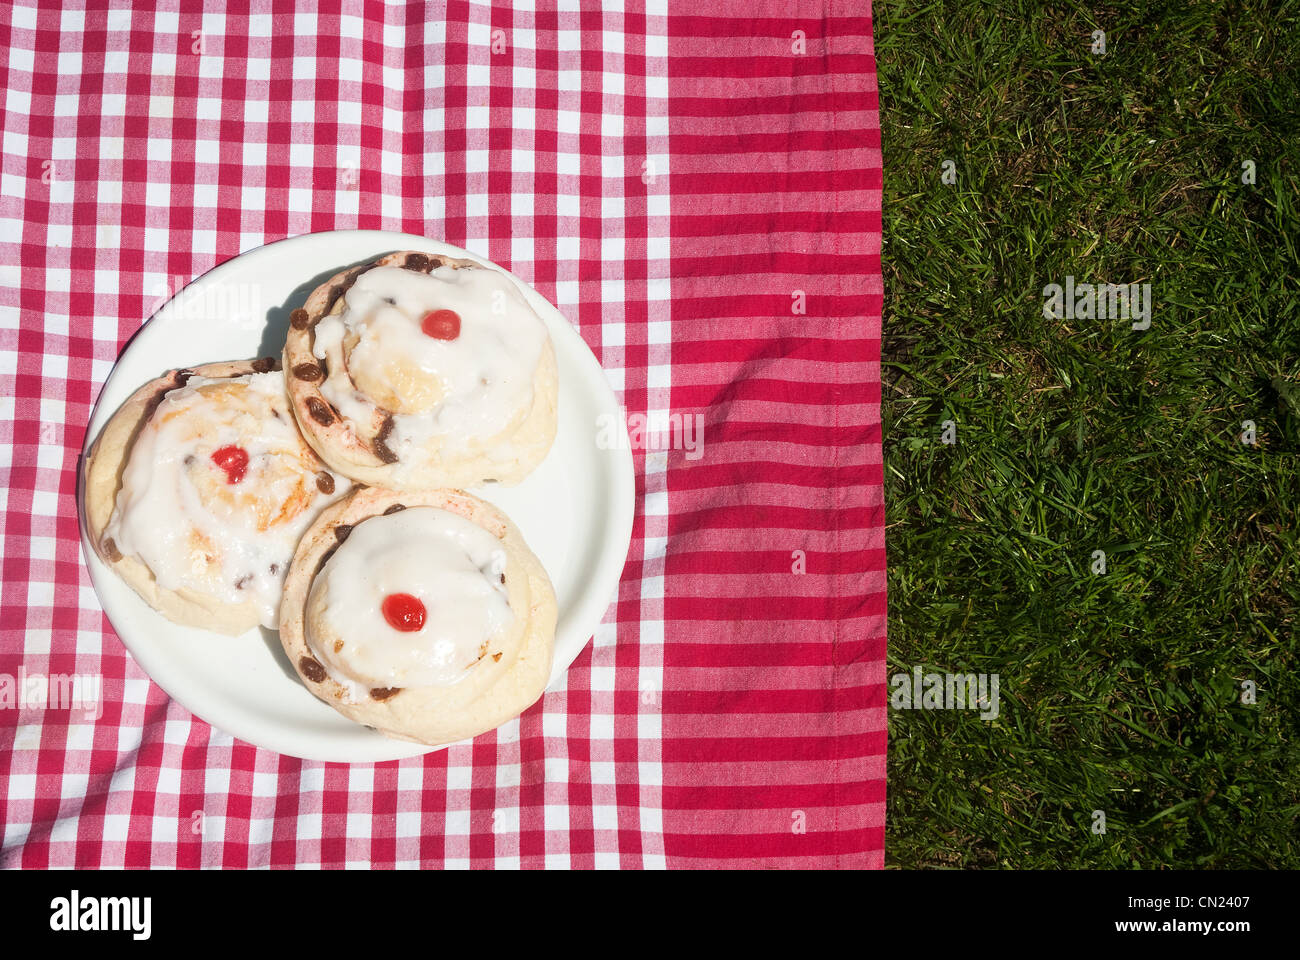 Three iced currant buns on picnic blanket - Stock Image